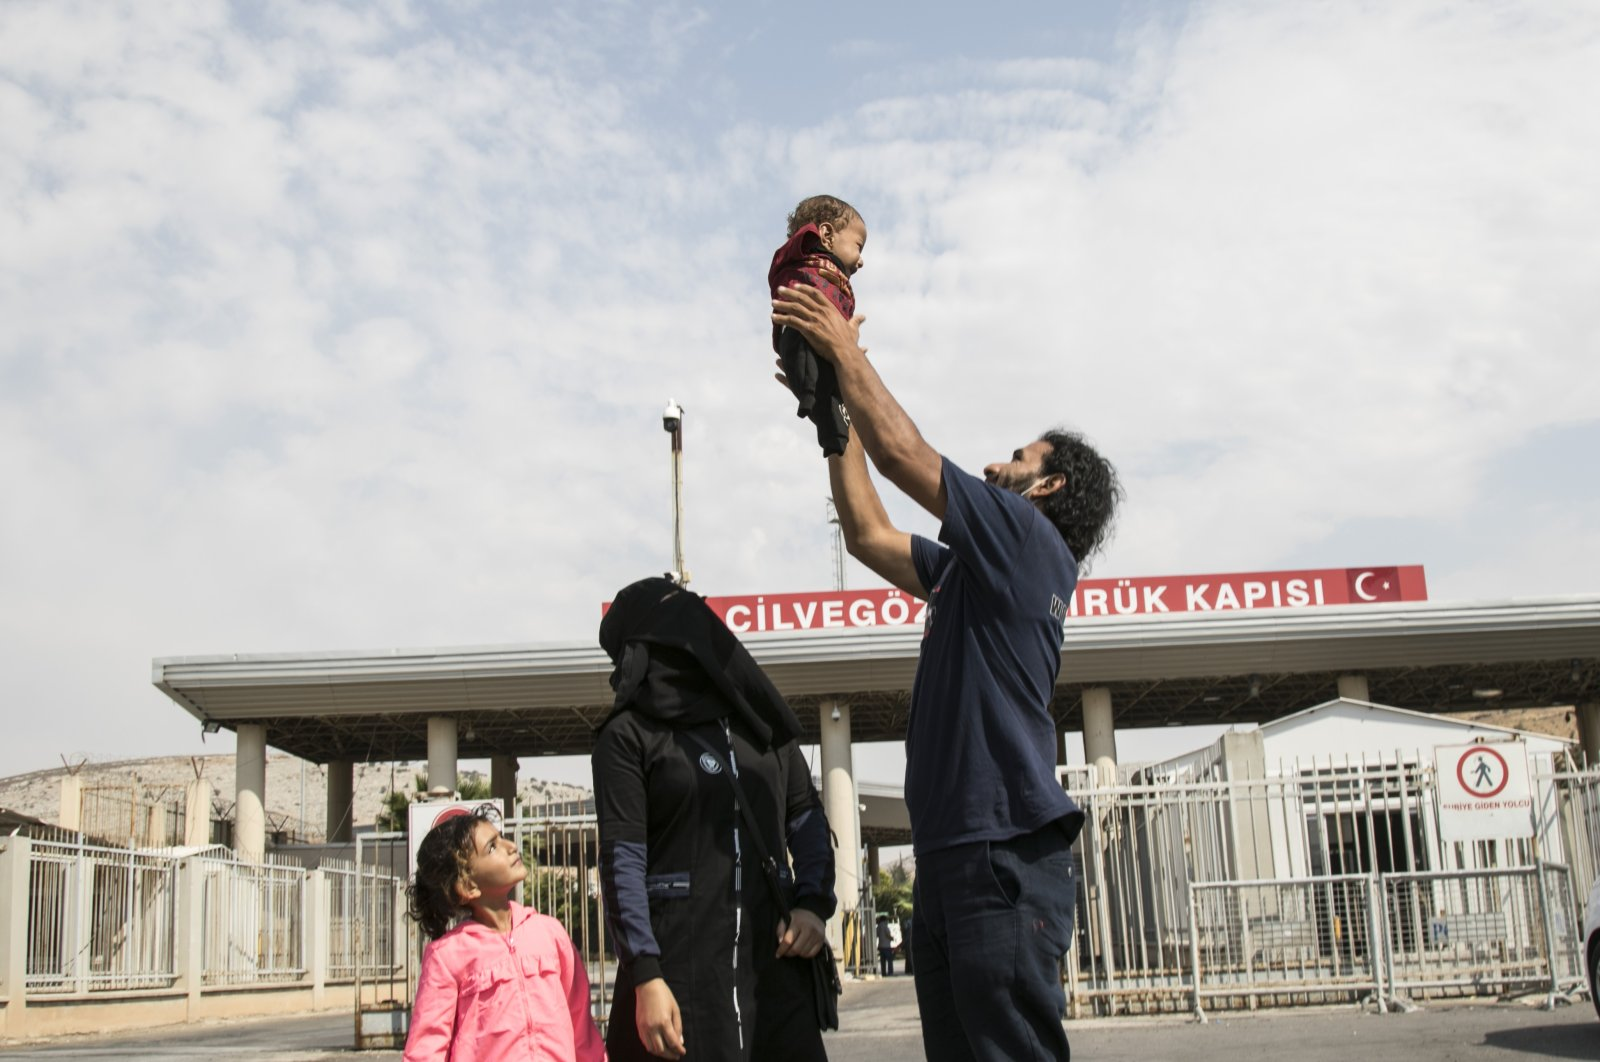 Khaled Misaytif holds his boy Muhammad as the family arrives at the Cilvegözü border crossing in Hatay, southern Turkey, Sept. 1, 2020. (AA Photo)